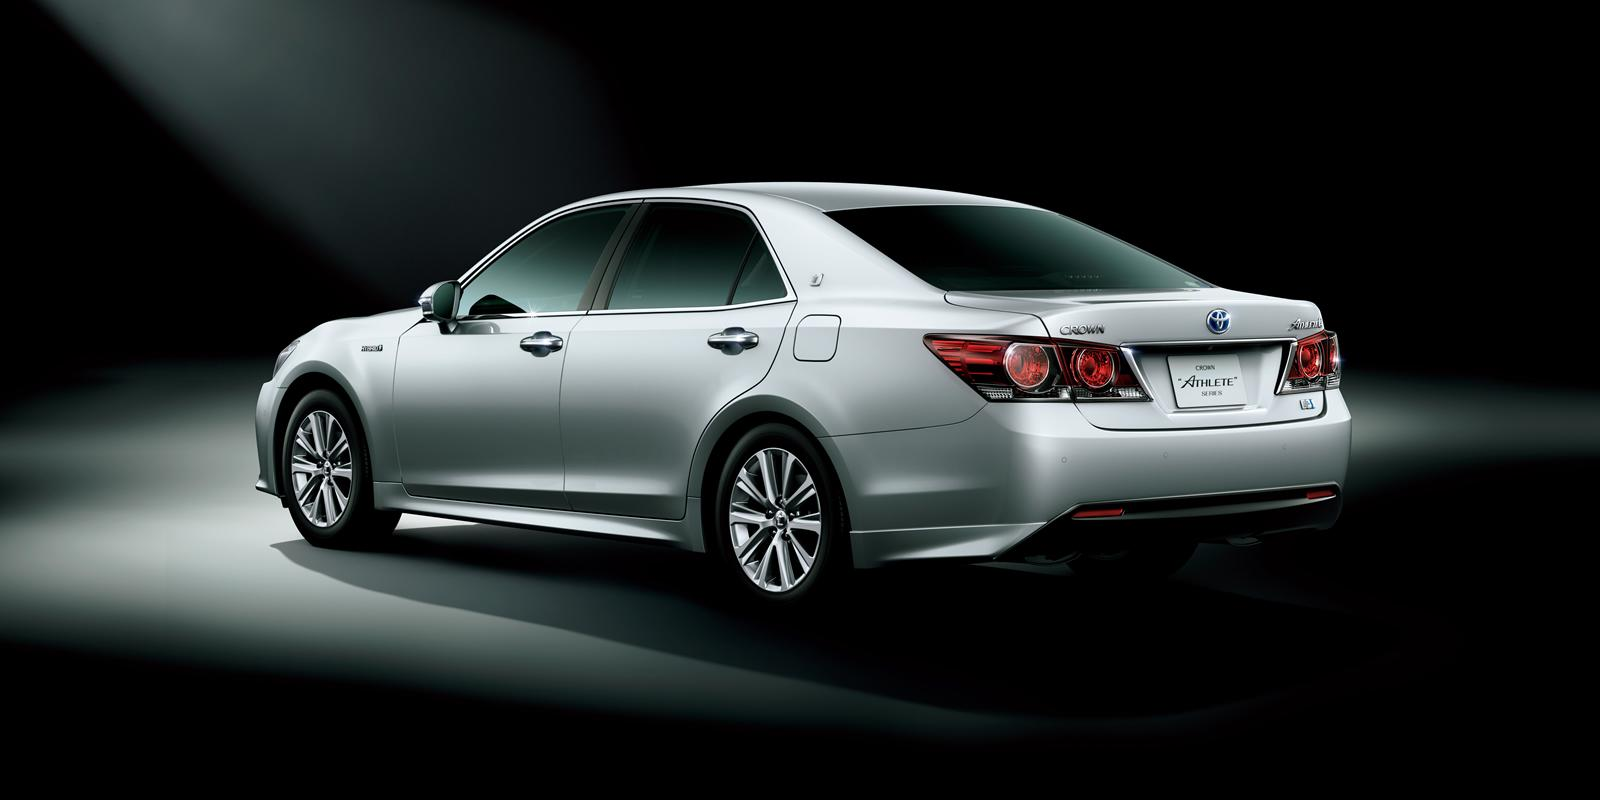 2015 Toyota Avalon For Sale >> 2014 Toyota Crown Athlete Is a Cool Sedan You Can't Have ...